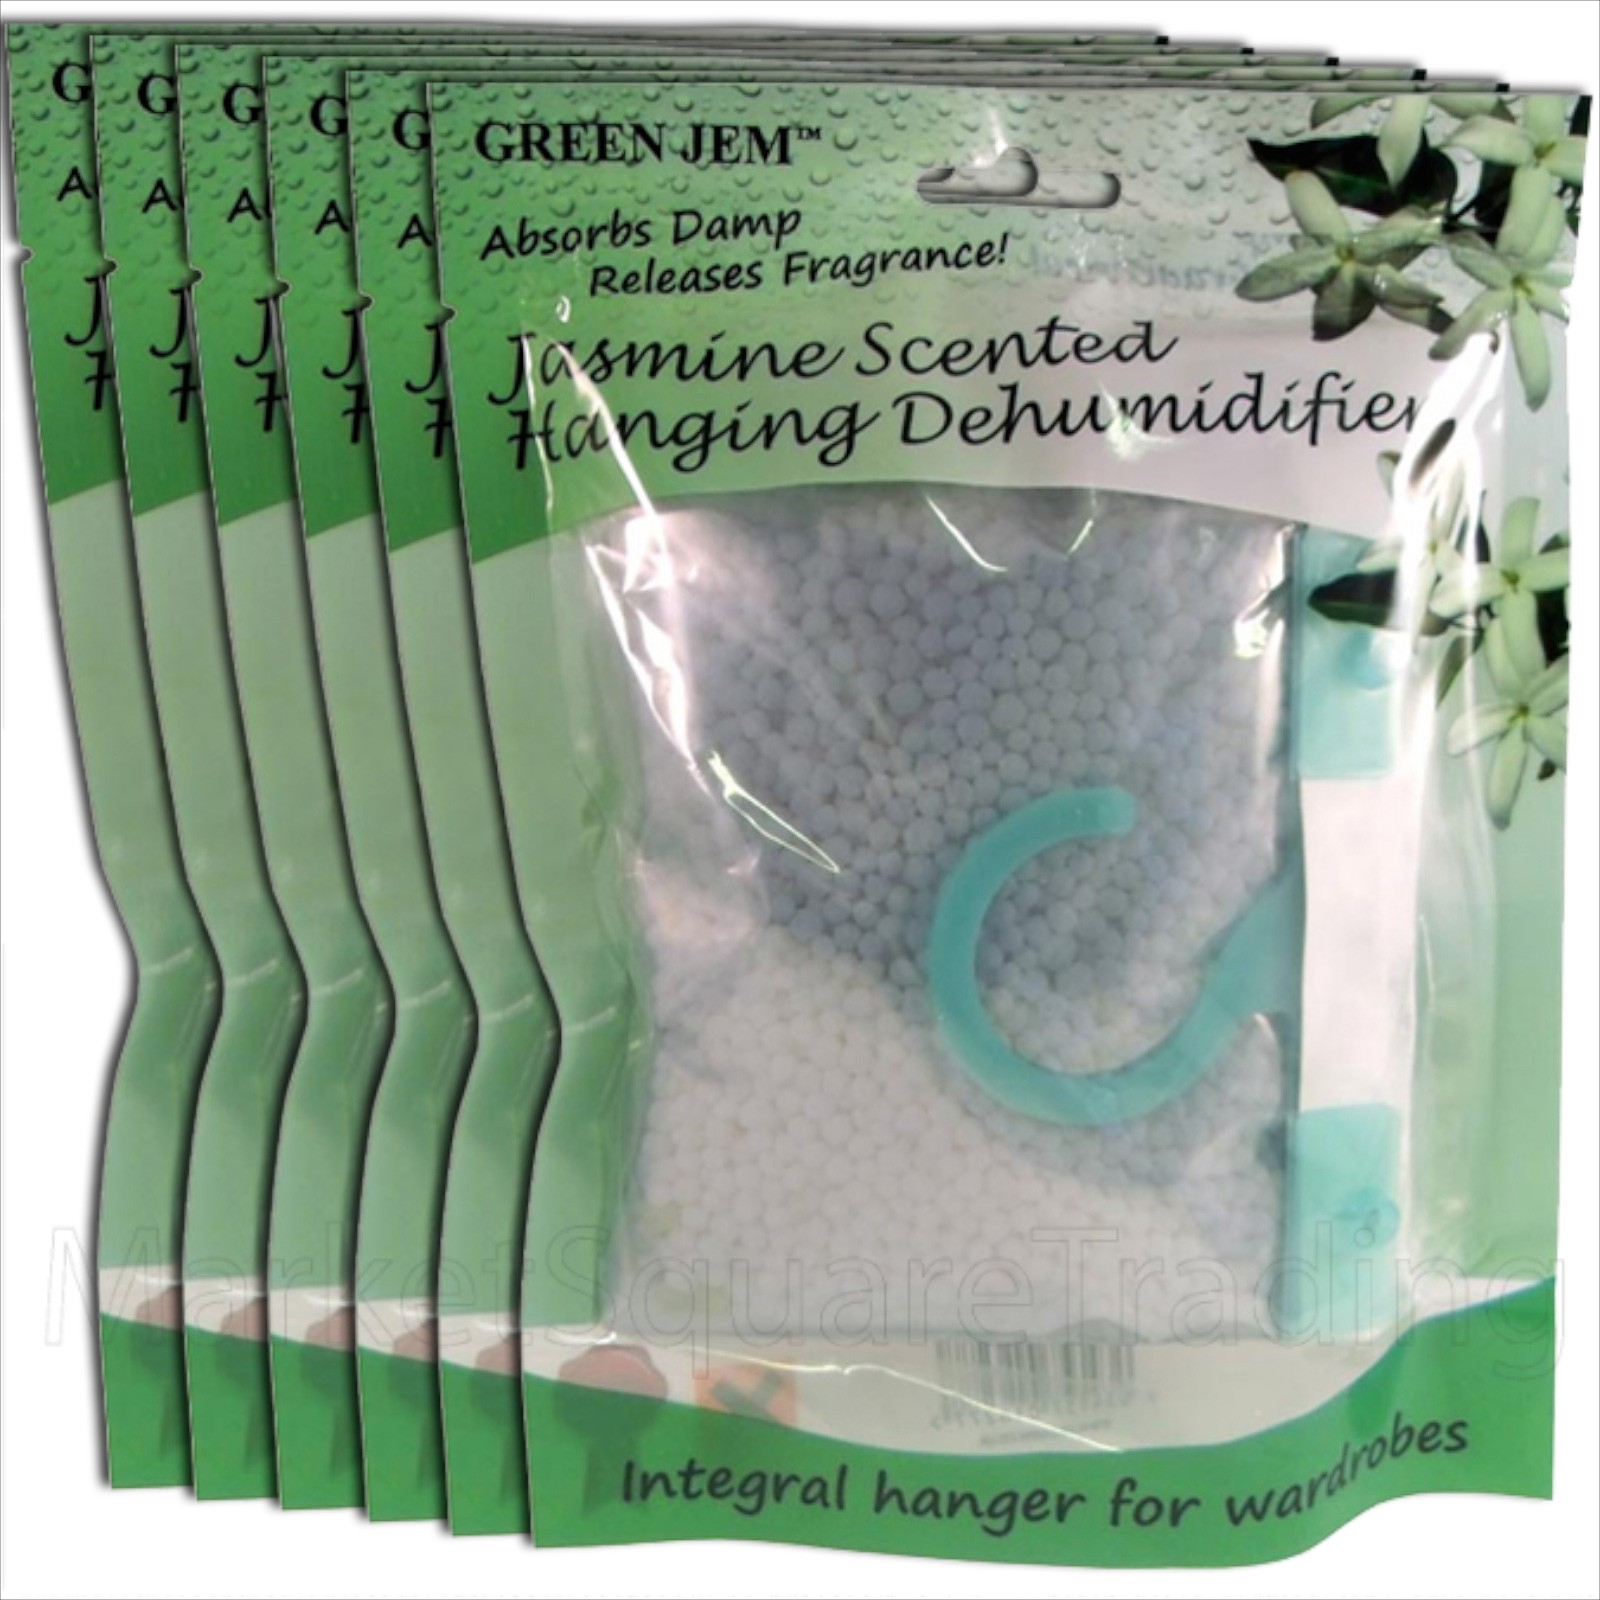 6 PACKS GREEN JEM 500ml DEHUMIDIFIER SCENTED WARDROBE HANGER - JASMINE SCENTED